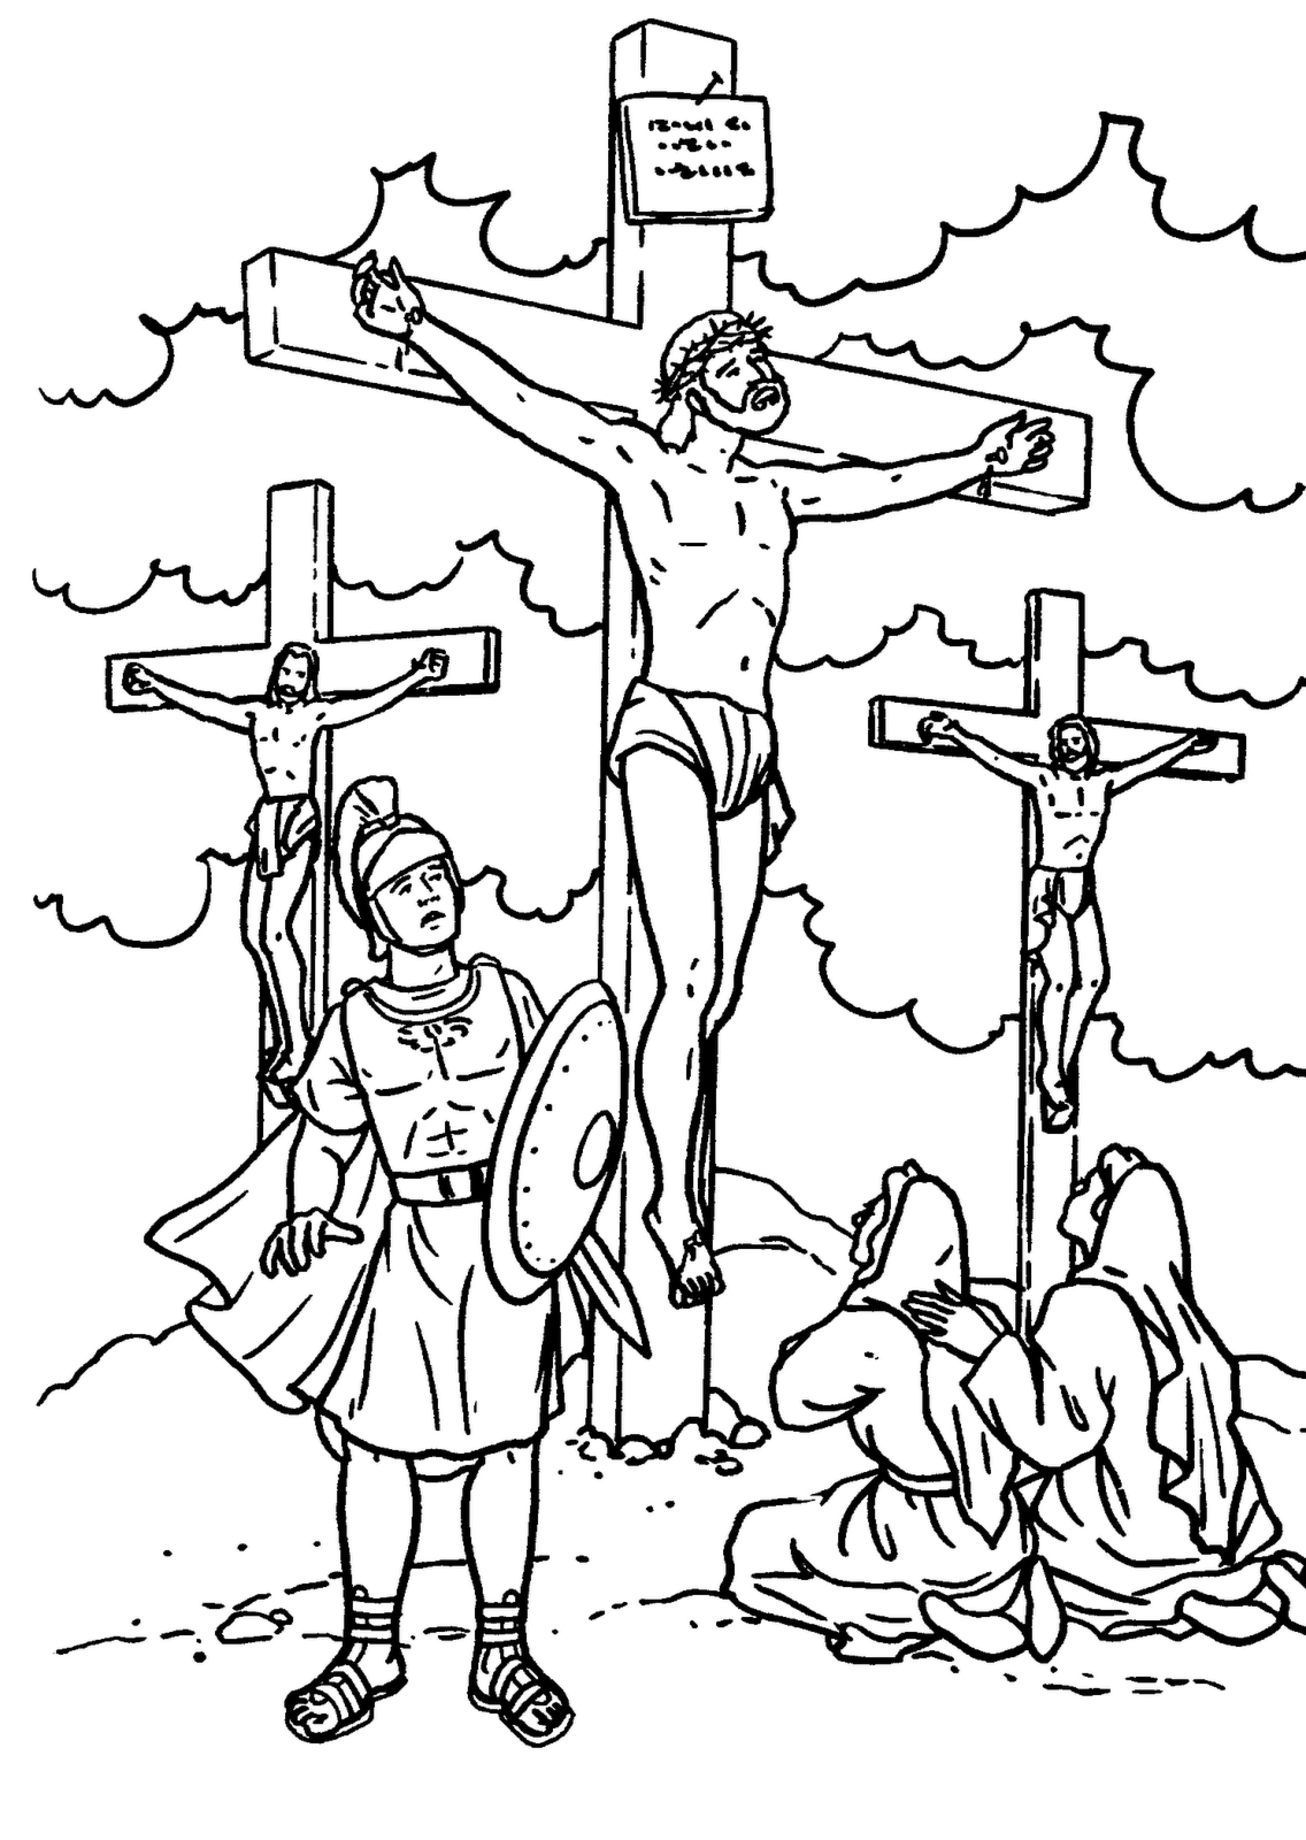 Coloring pages 6 year olds - Lesson 9 Jesus Is Crucified Jesus On The Cross 2 3 Year Olds 4 5 Year Olds